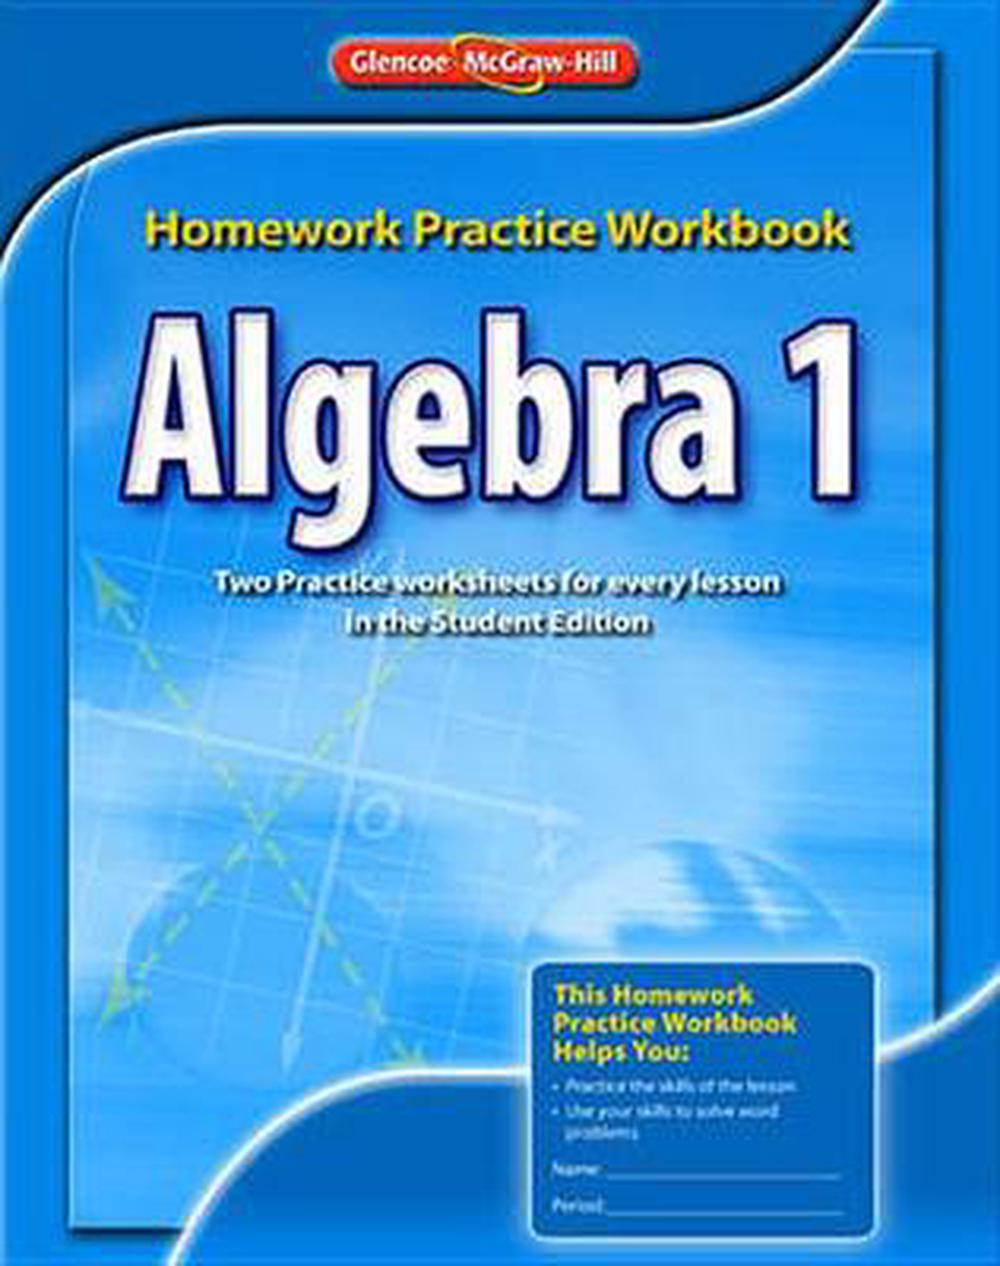 Workbooks practice workbook : Algebra 1 Homework Practice Workbook by McGraw-Hill Education ...